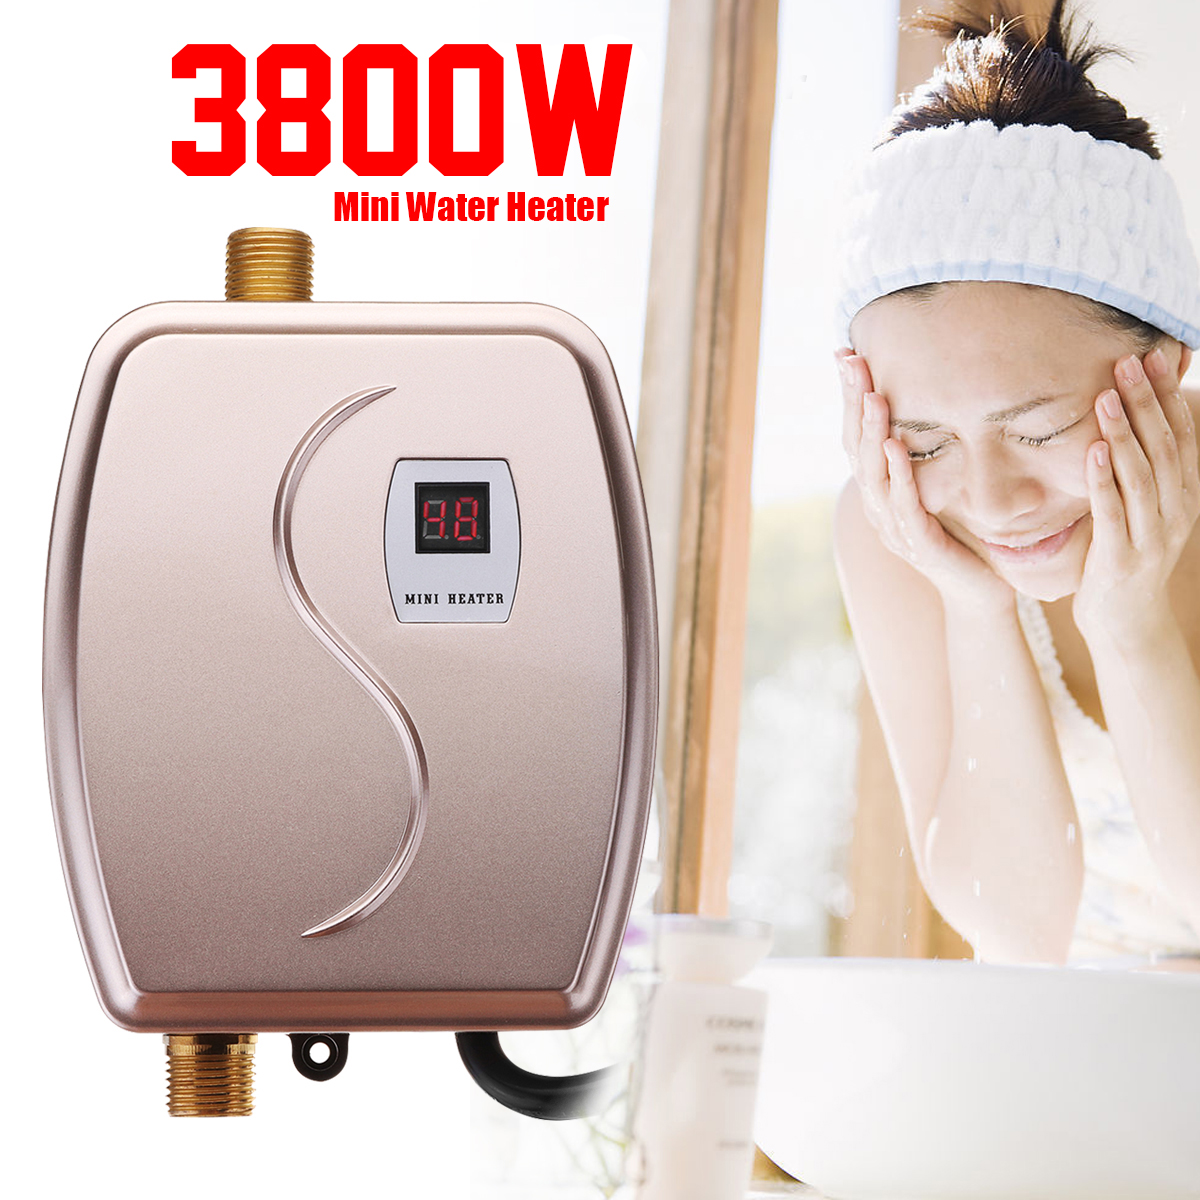 Mini Instant Heating 3800W Electric Water Heater LED Display Electric Hot Water Heater Instantaneous Leakage Protection Kitchen